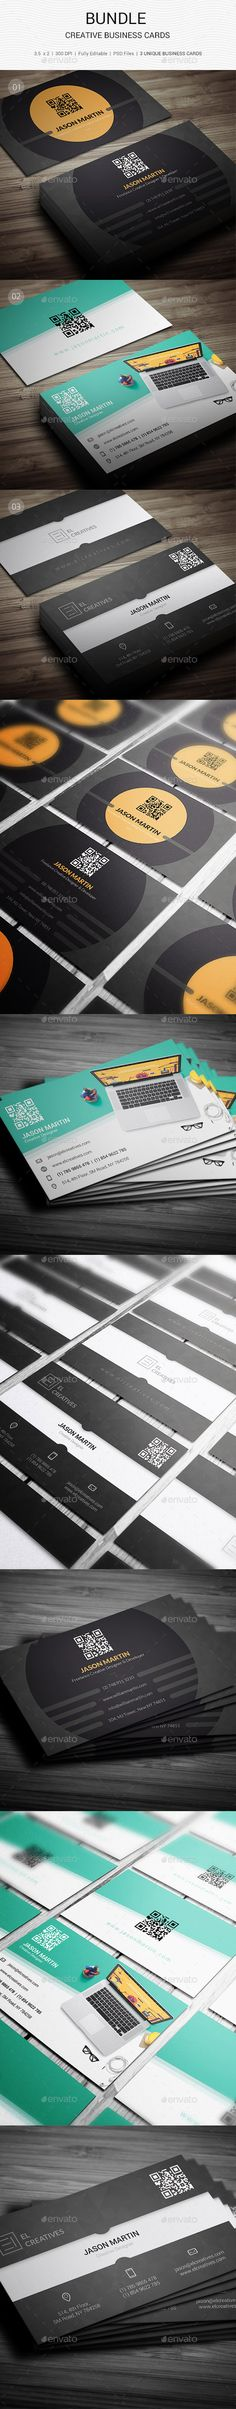 Bundle Business Card Template #print #design Download: http://graphicriver.net/item/bundle-3-in-1-132/12040084?ref=ksioks